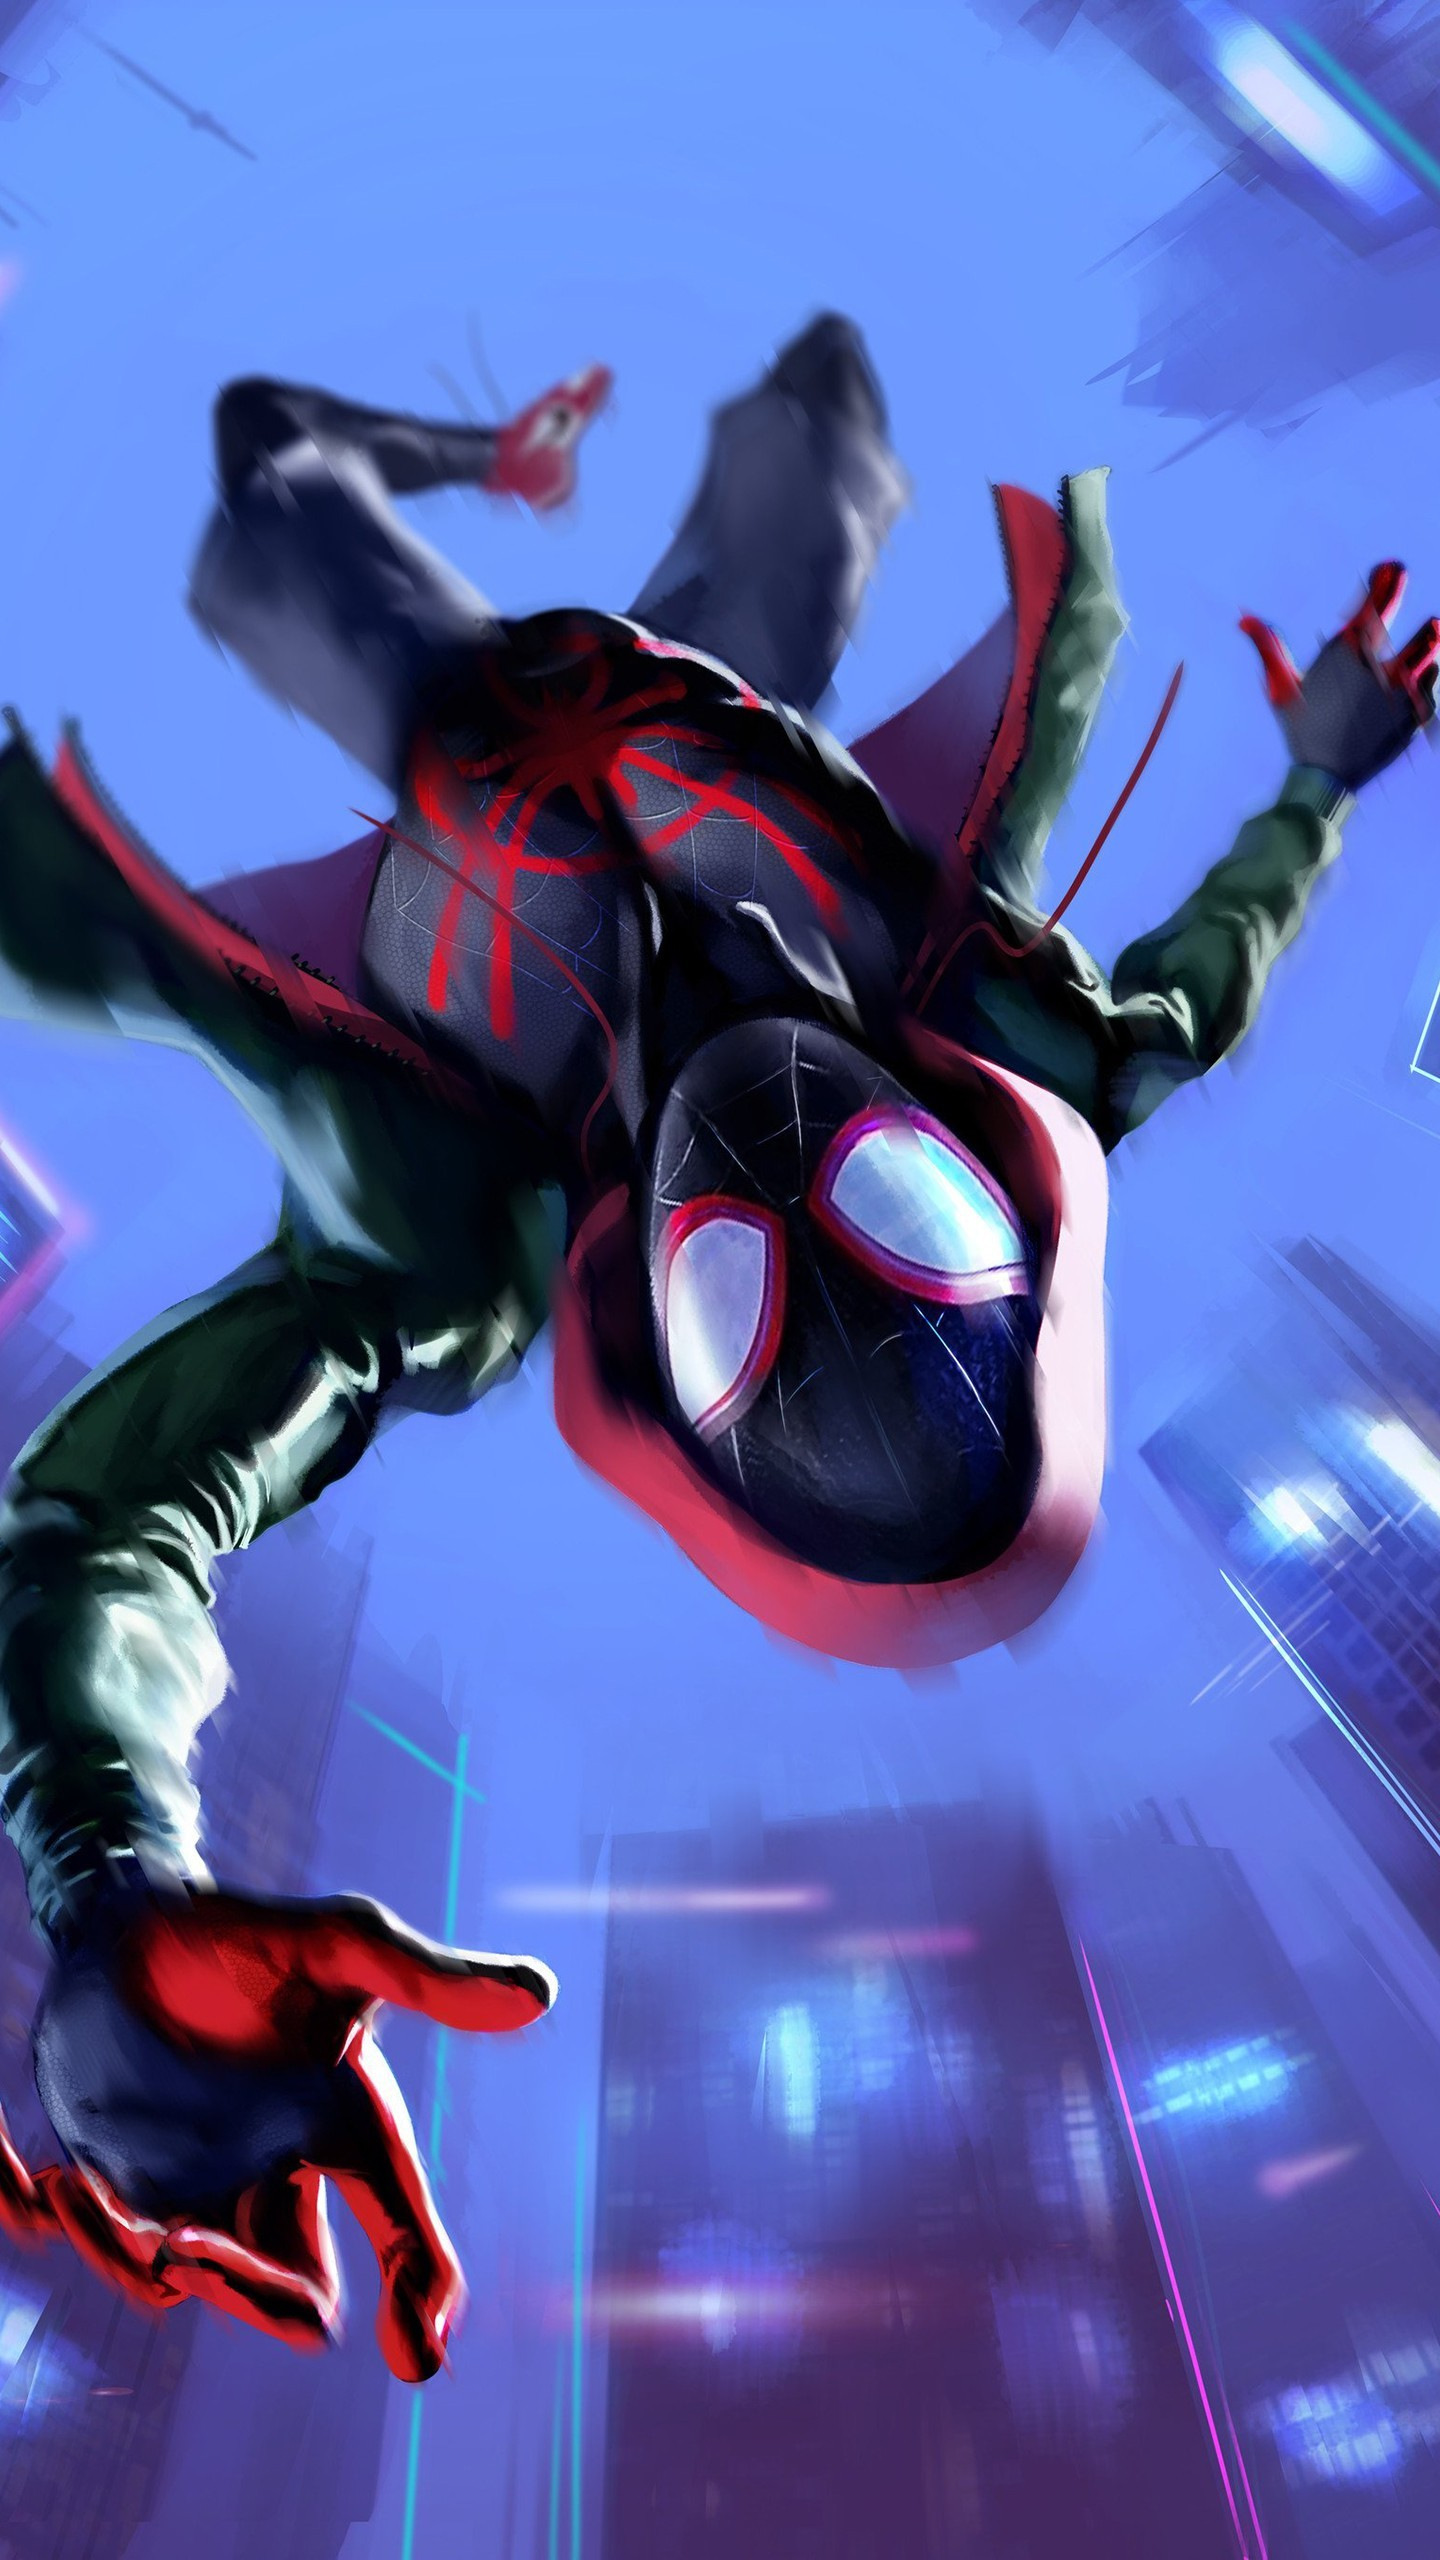 1440x2560 Miles Morales in Spider-Man Into the Spider-Verse Wallpapers | HD .